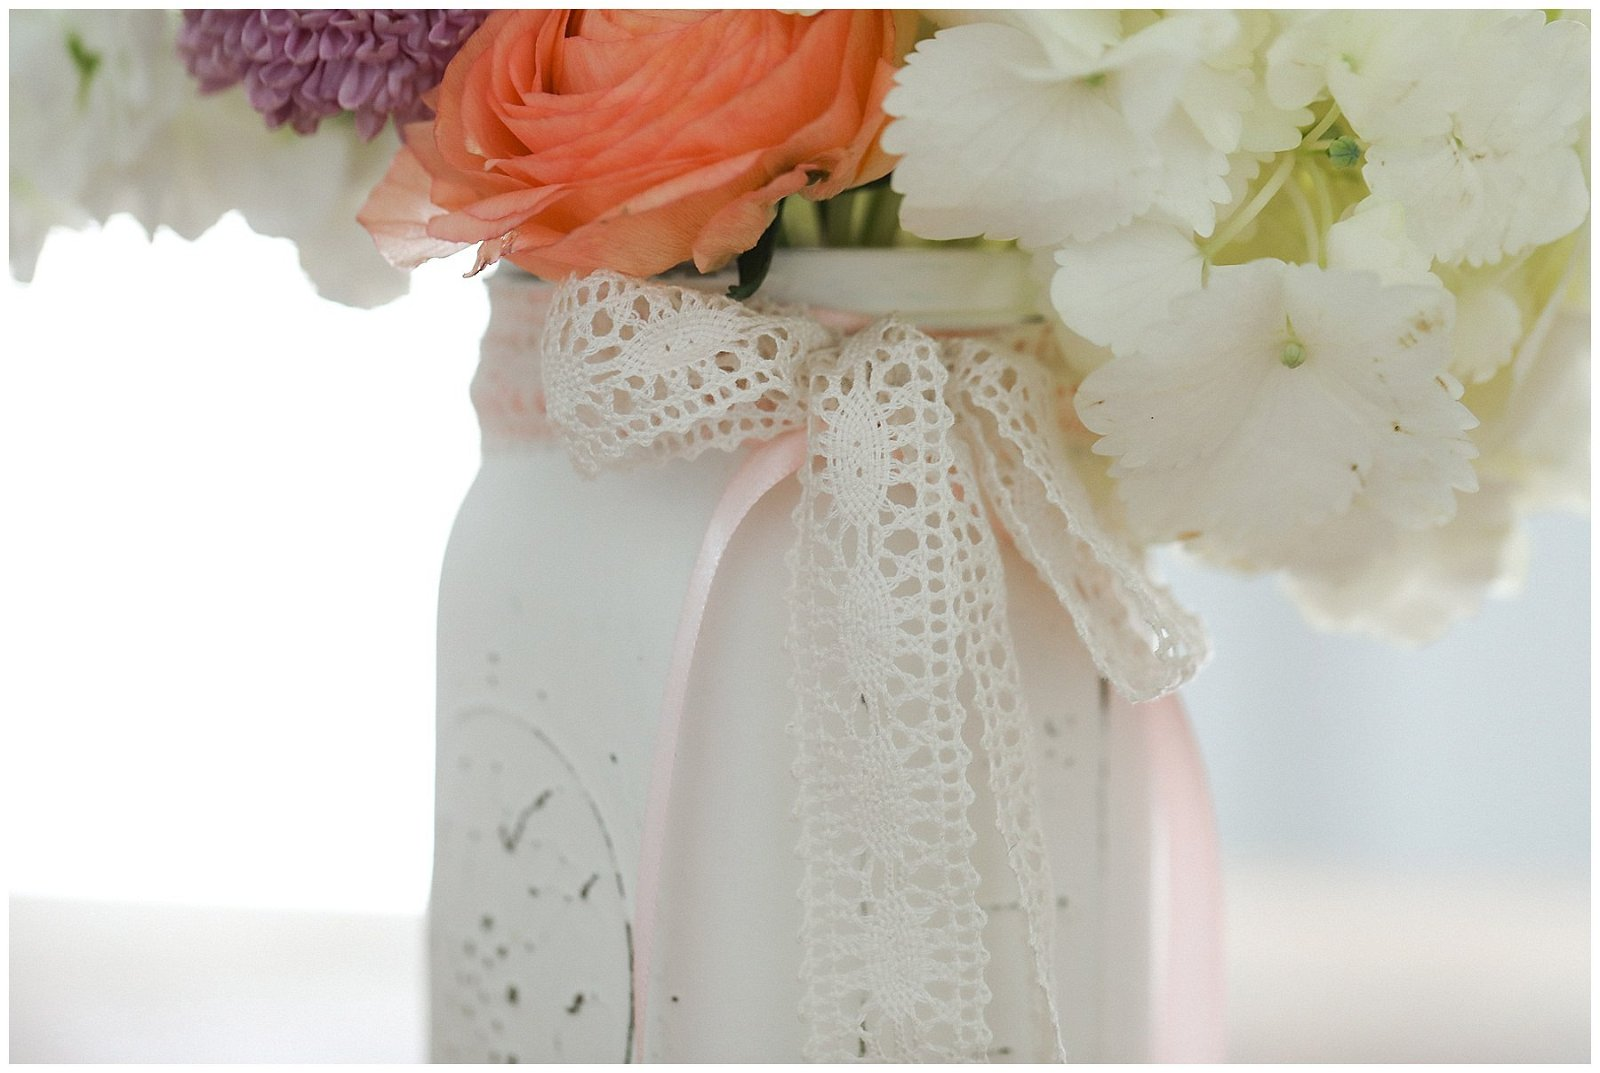 Vintage farmhouse DIY mason jar vase